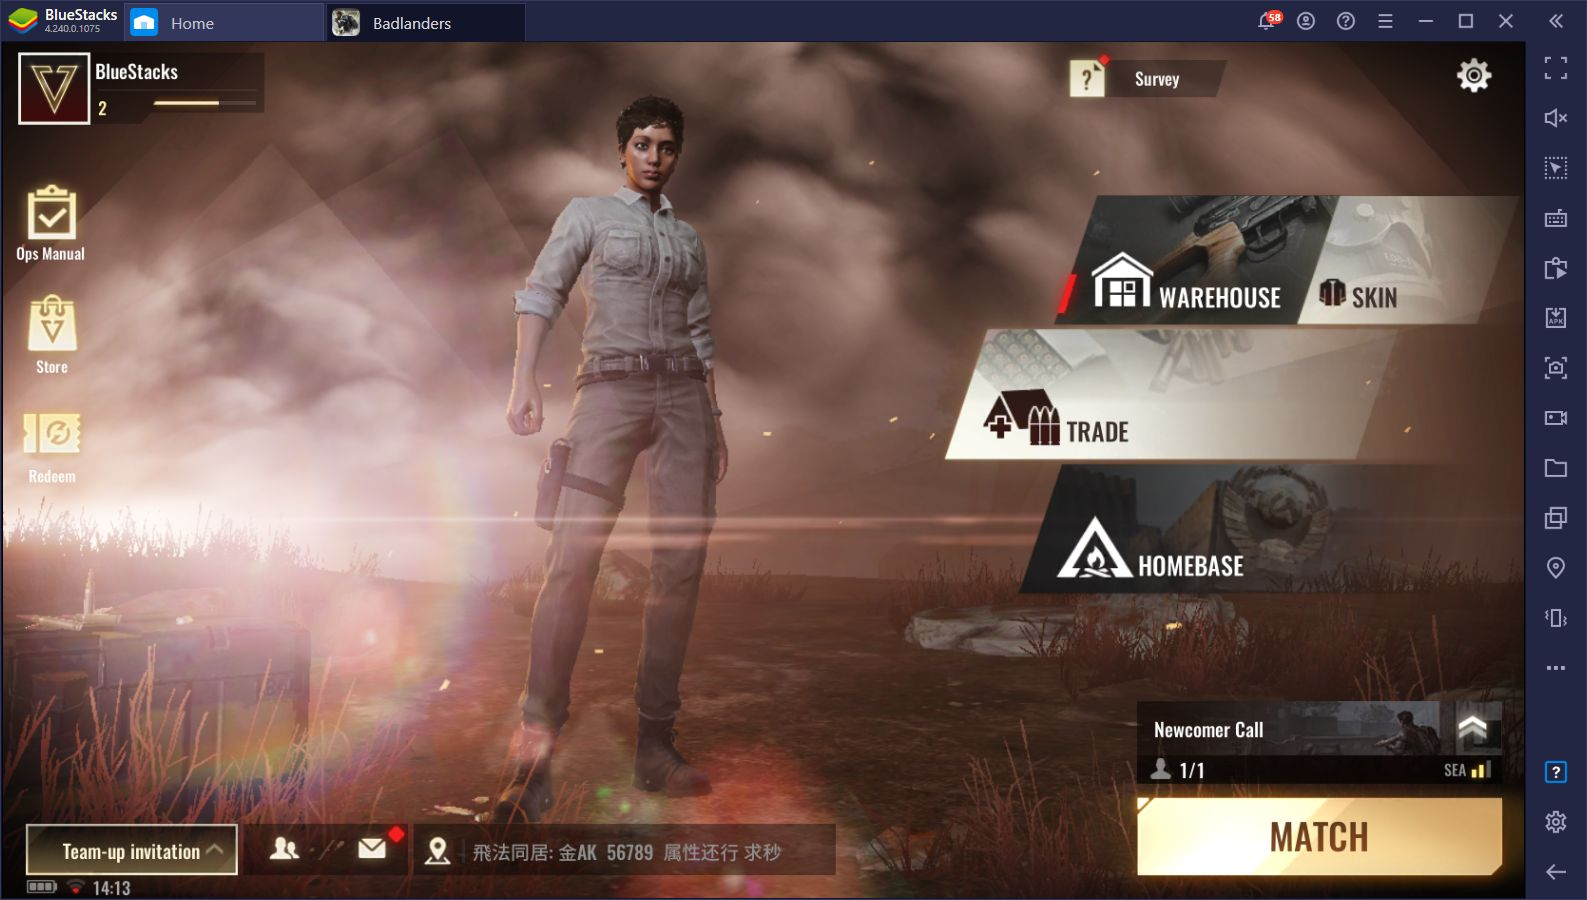 Badlanders on PC – How to Install and Play This New Shooter on PC